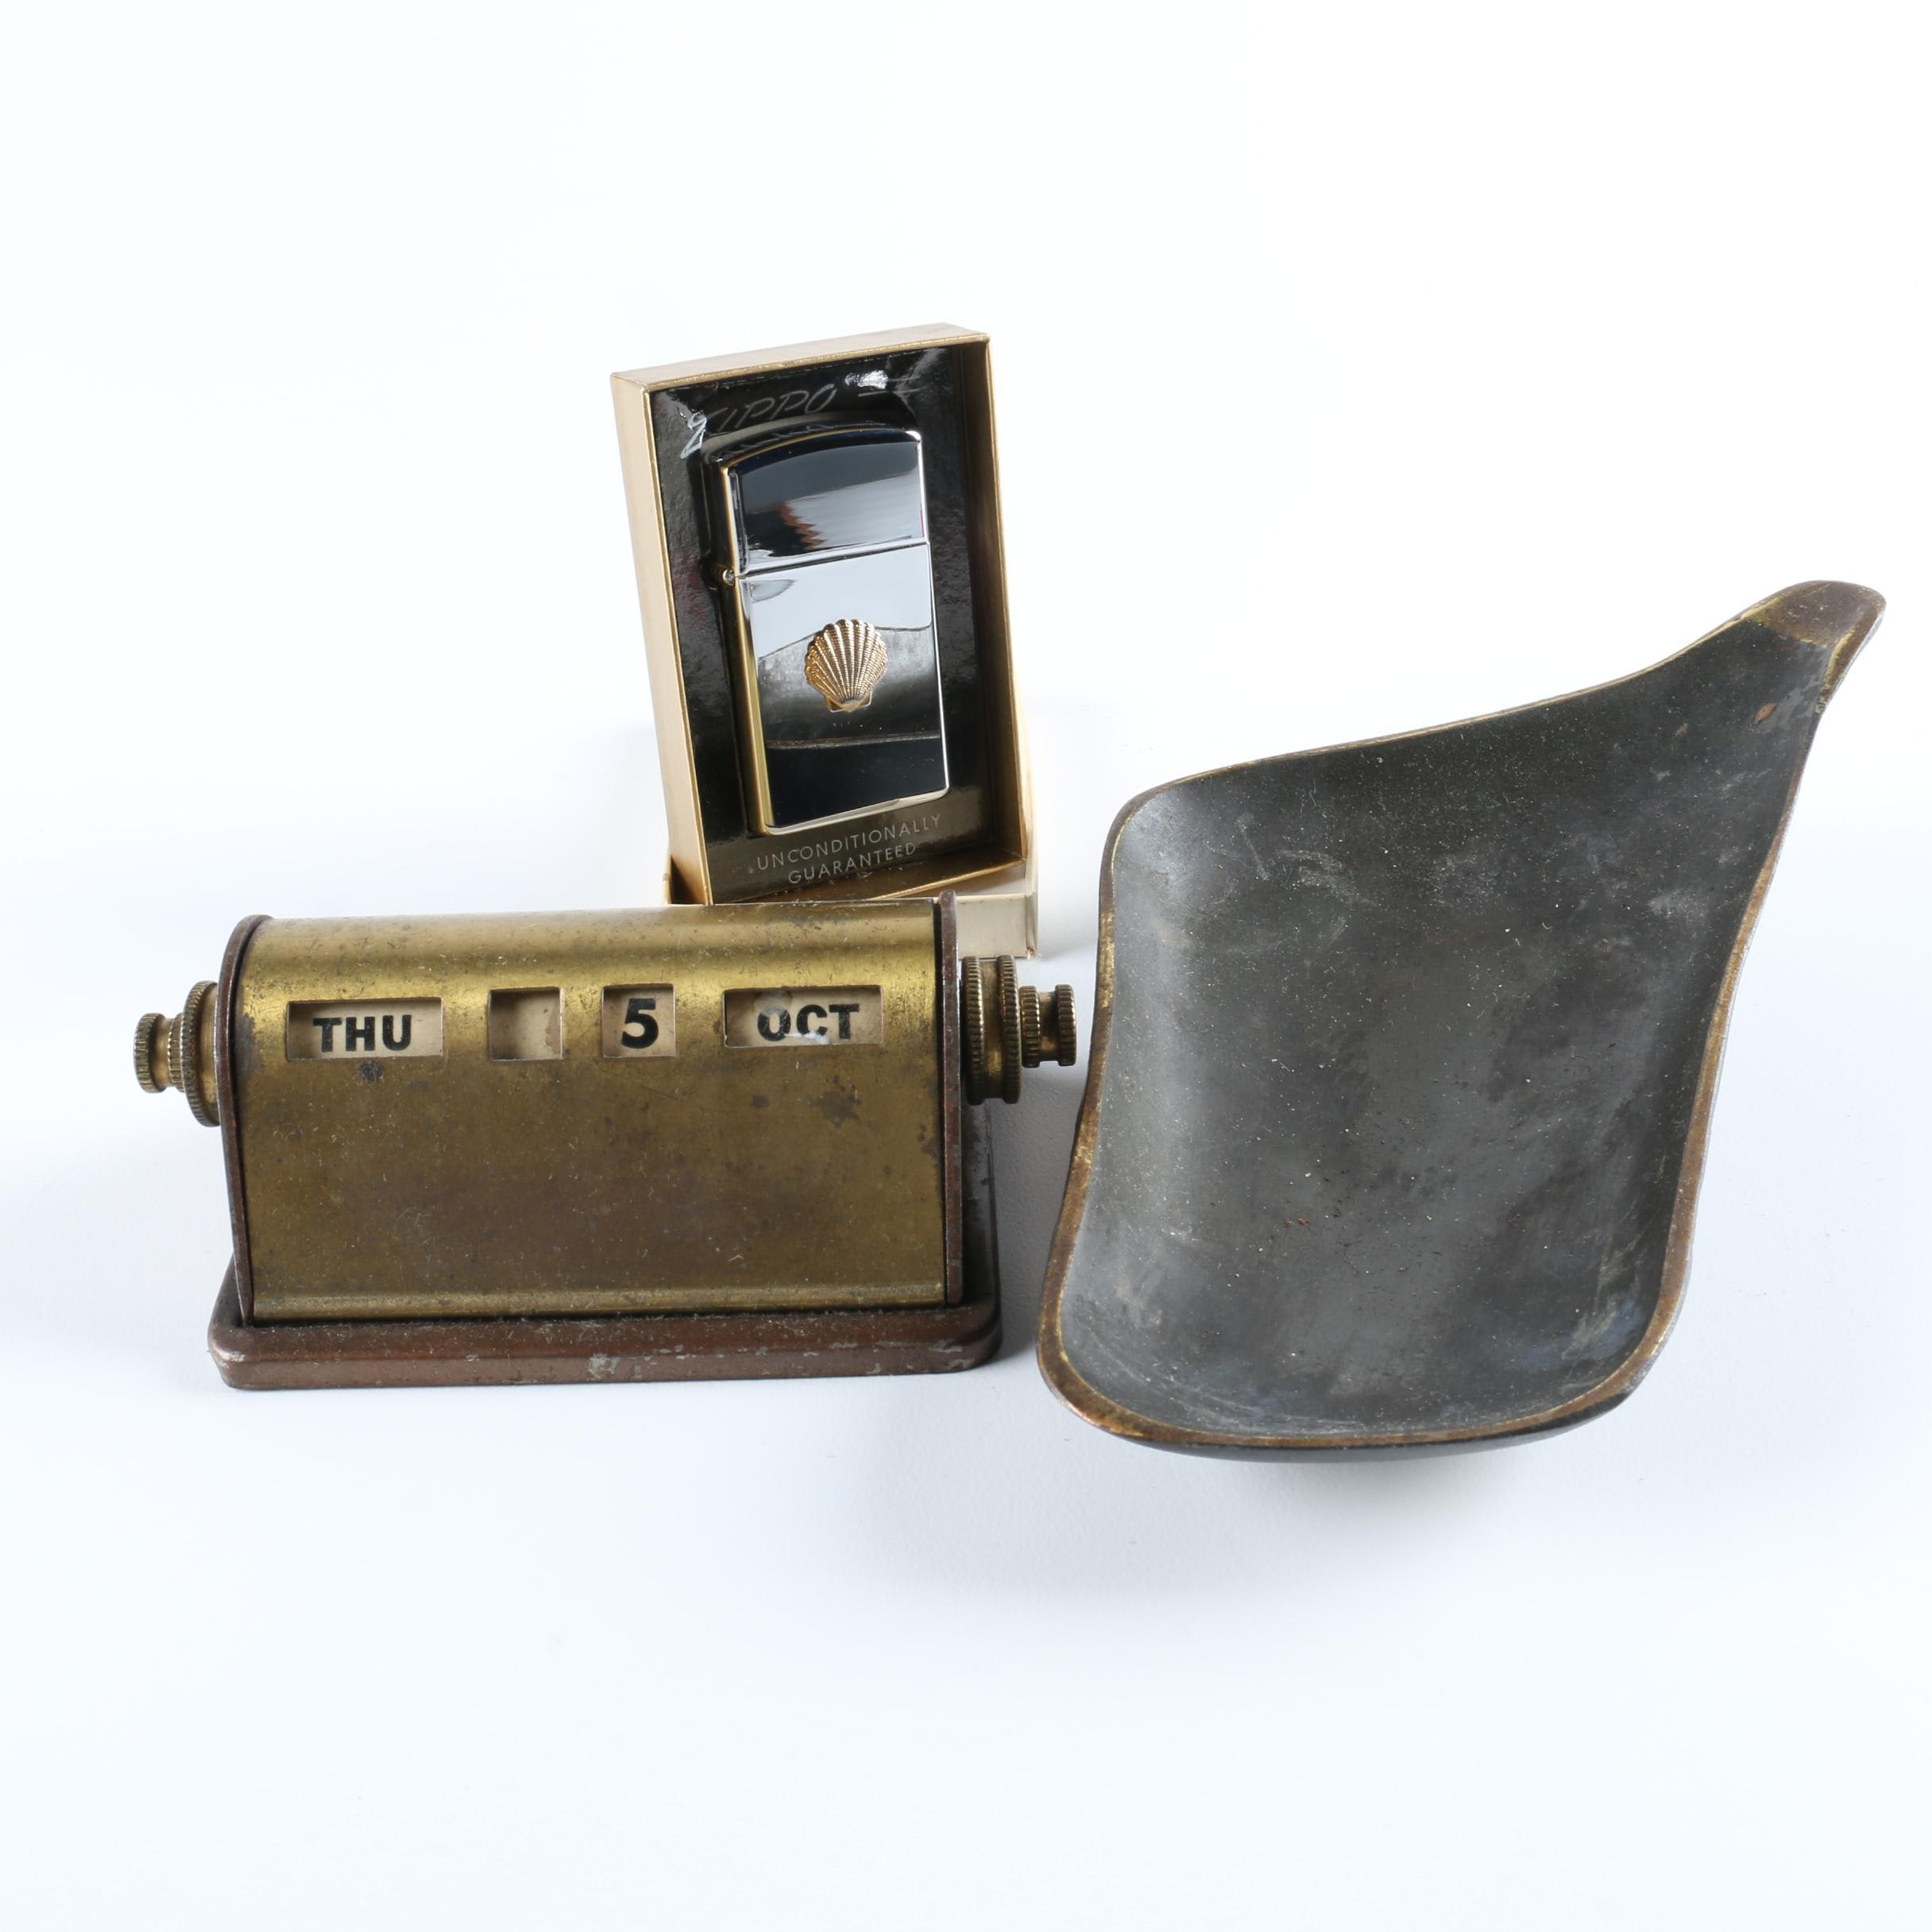 Vintage Brass Decor and Zippo Lighter